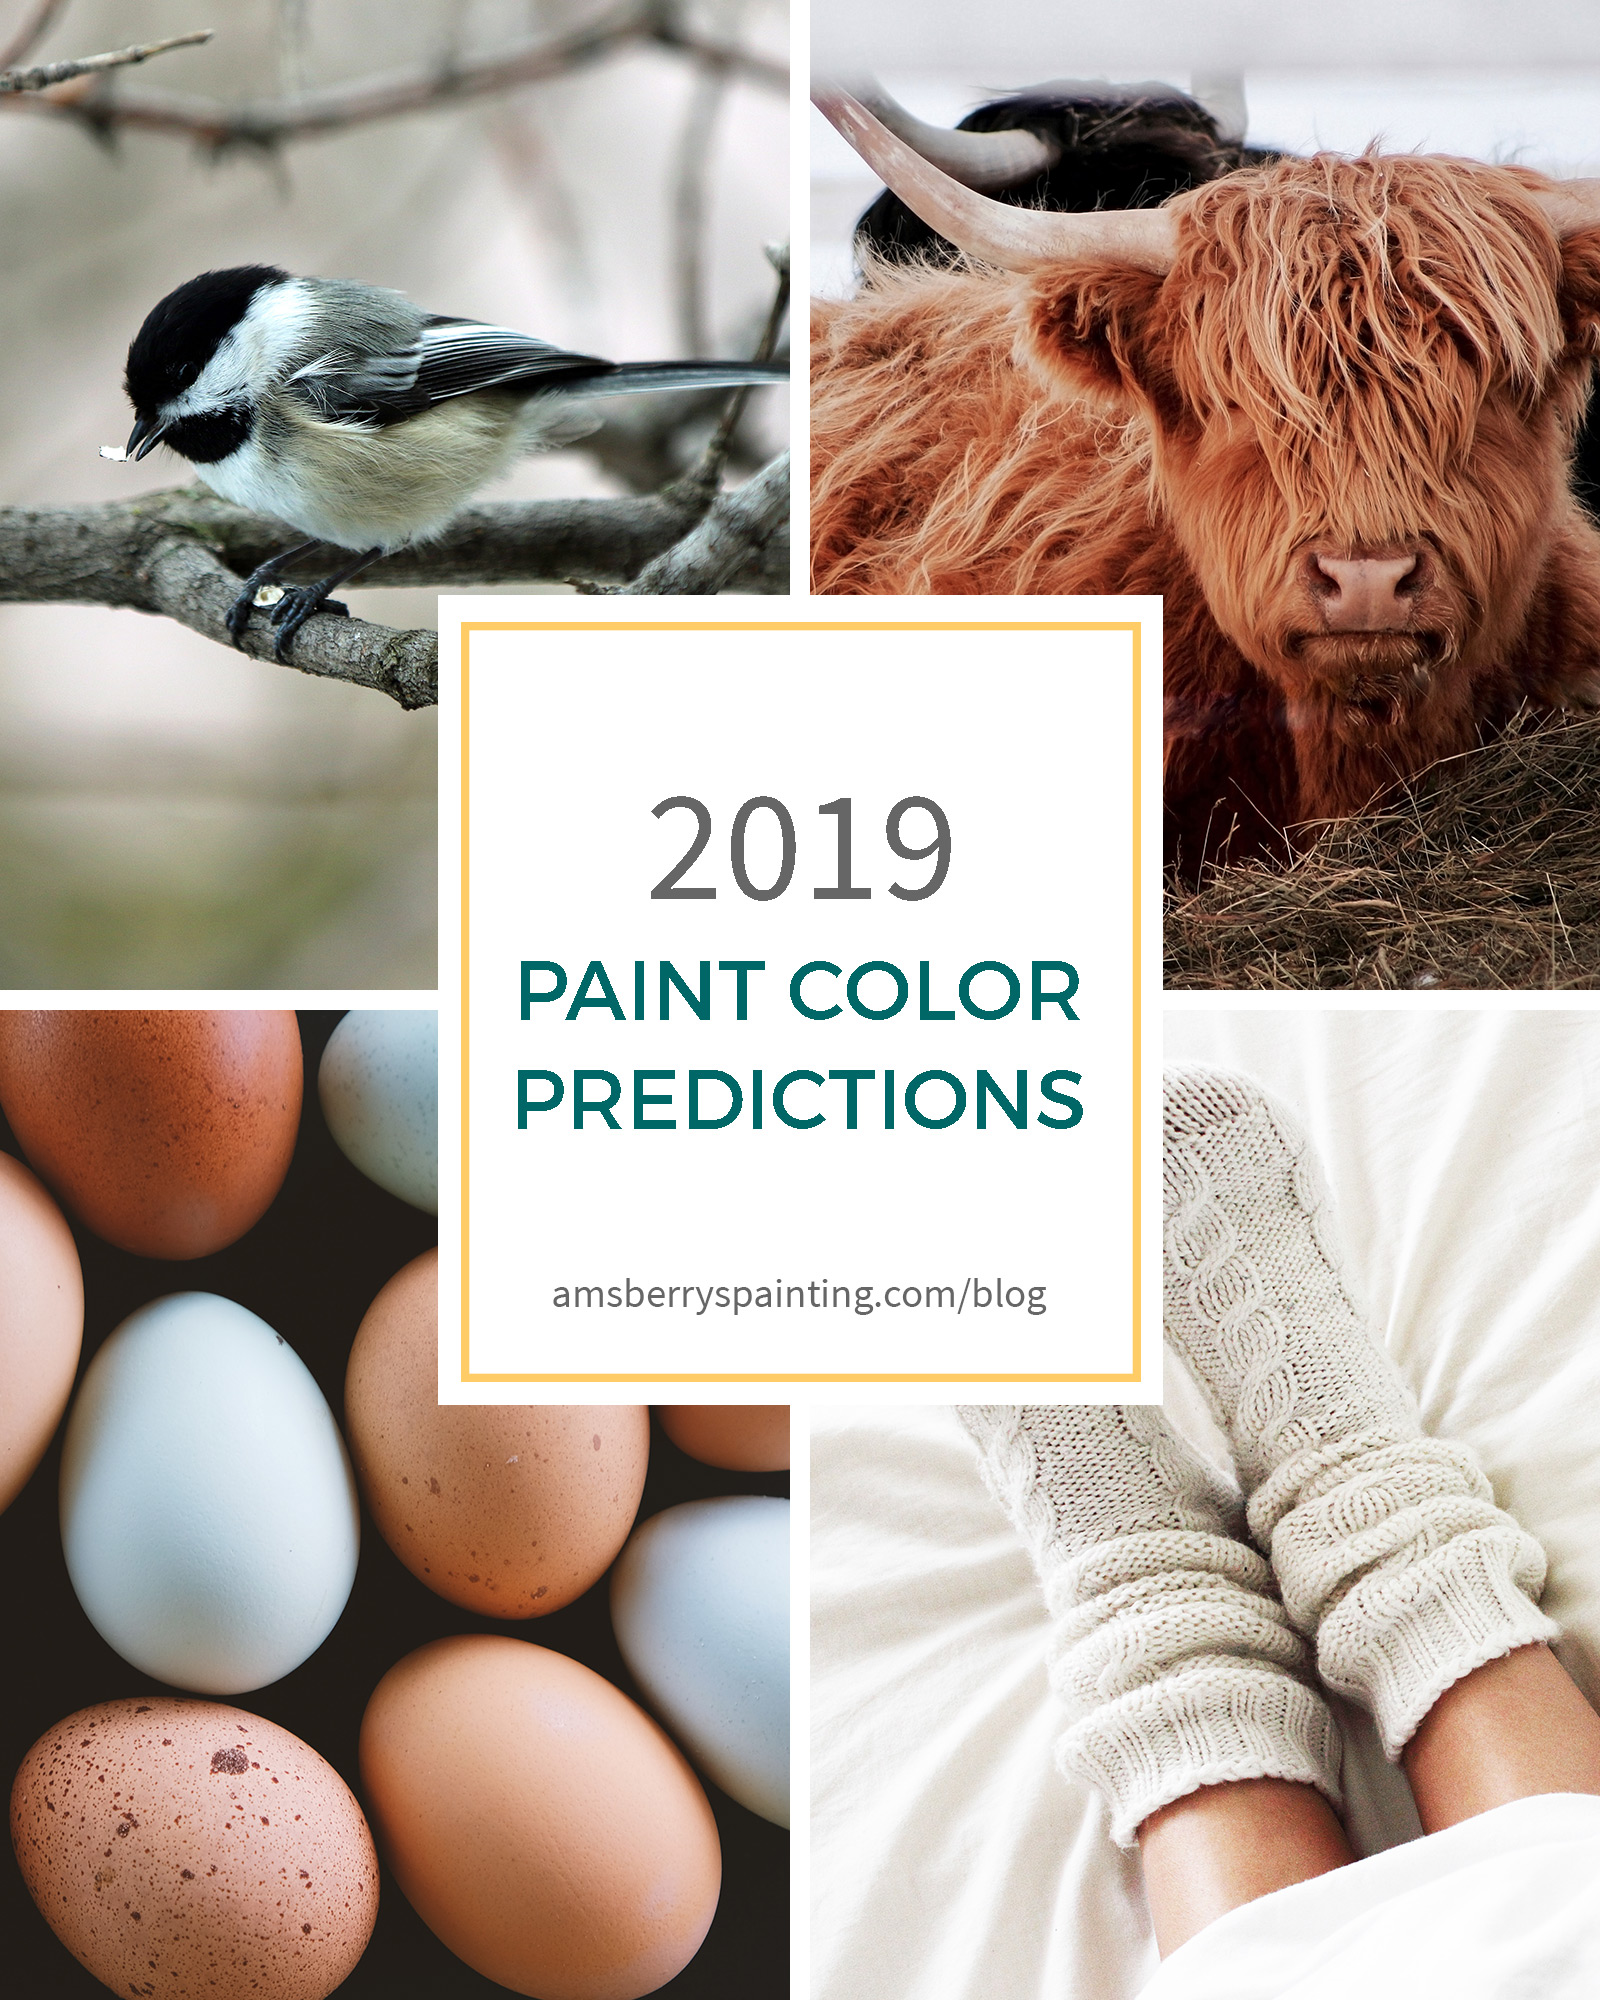 Paint color predictions 2019 new year new colors - New year 2019 color ...